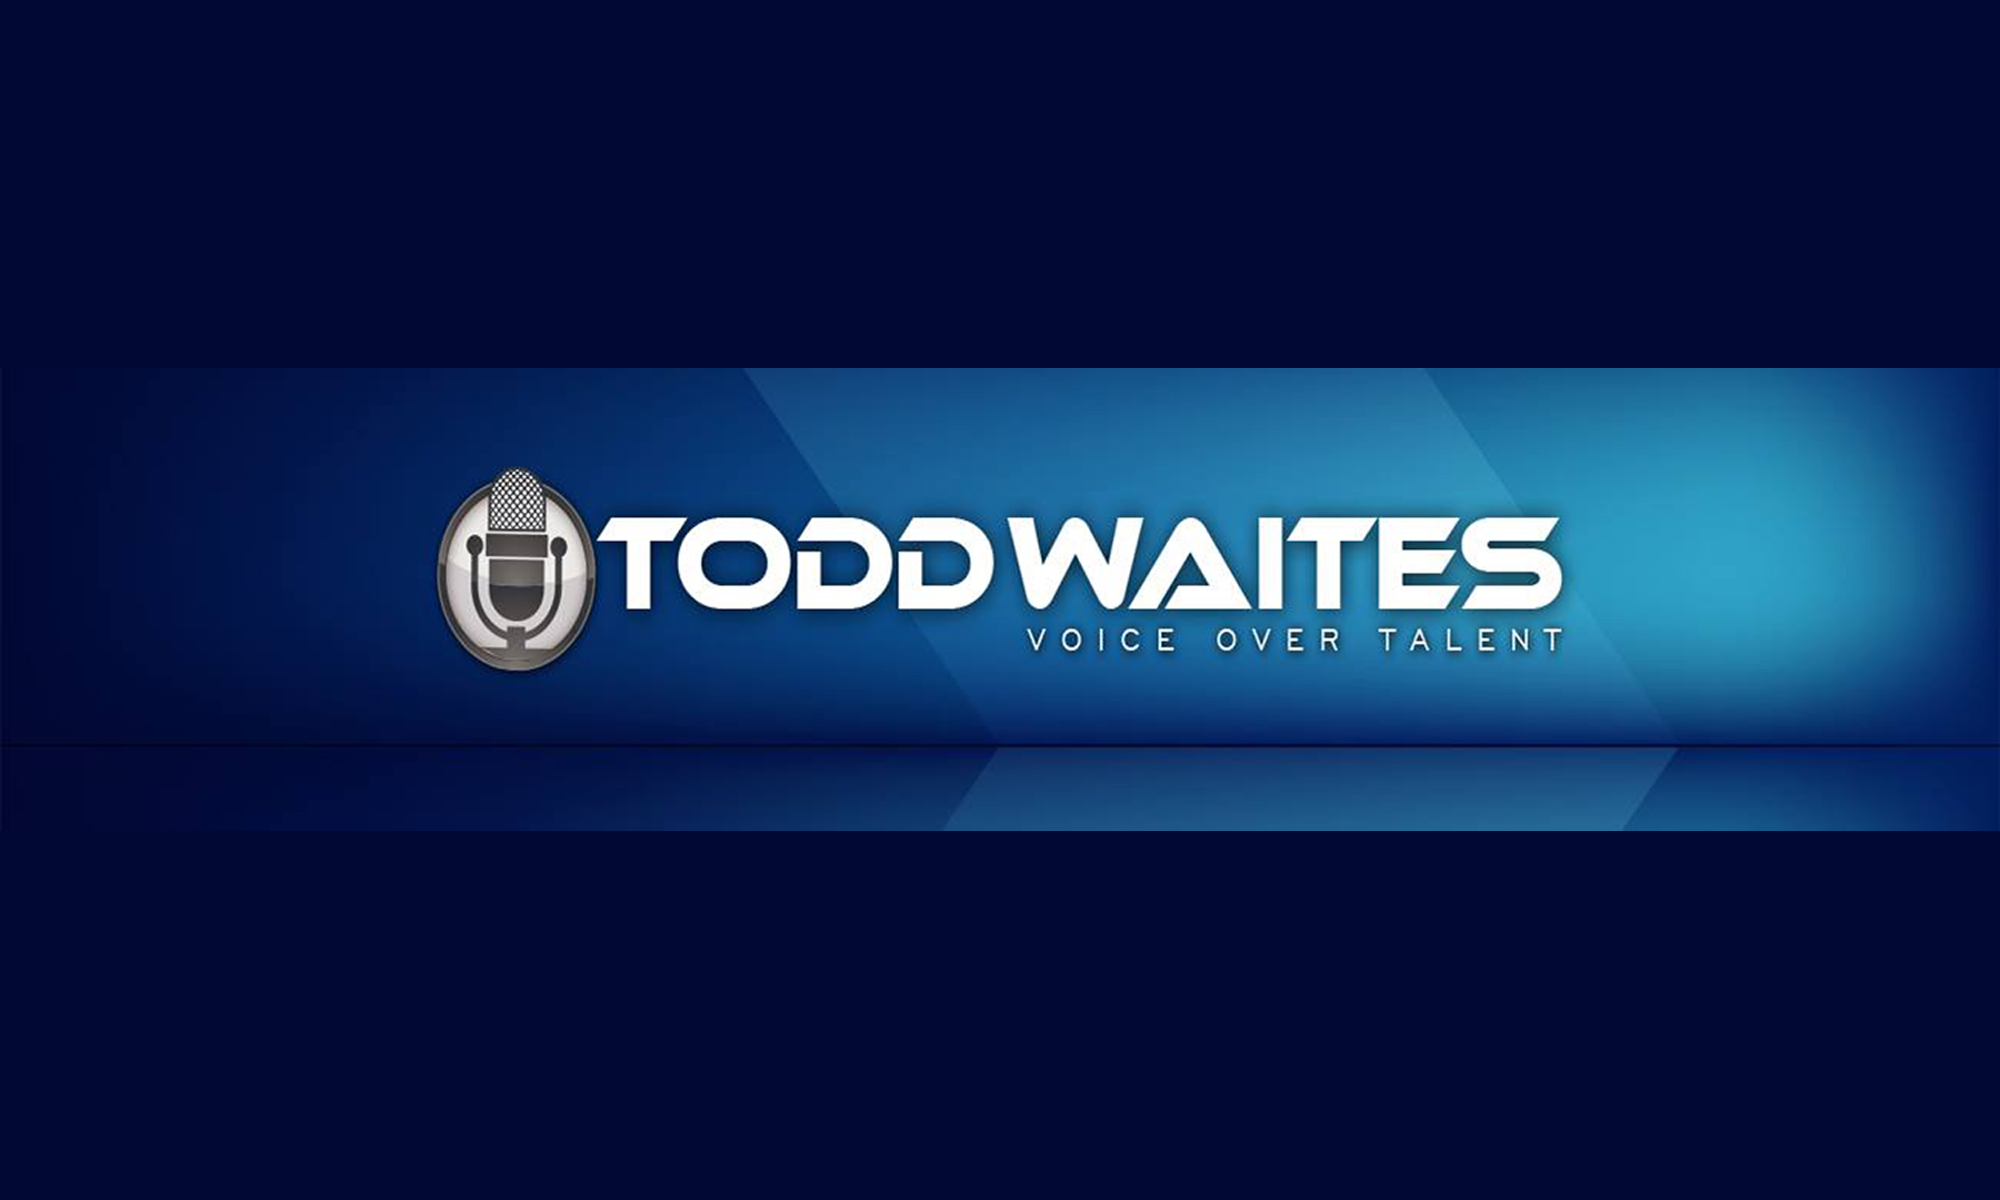 The Voice of Todd Waites